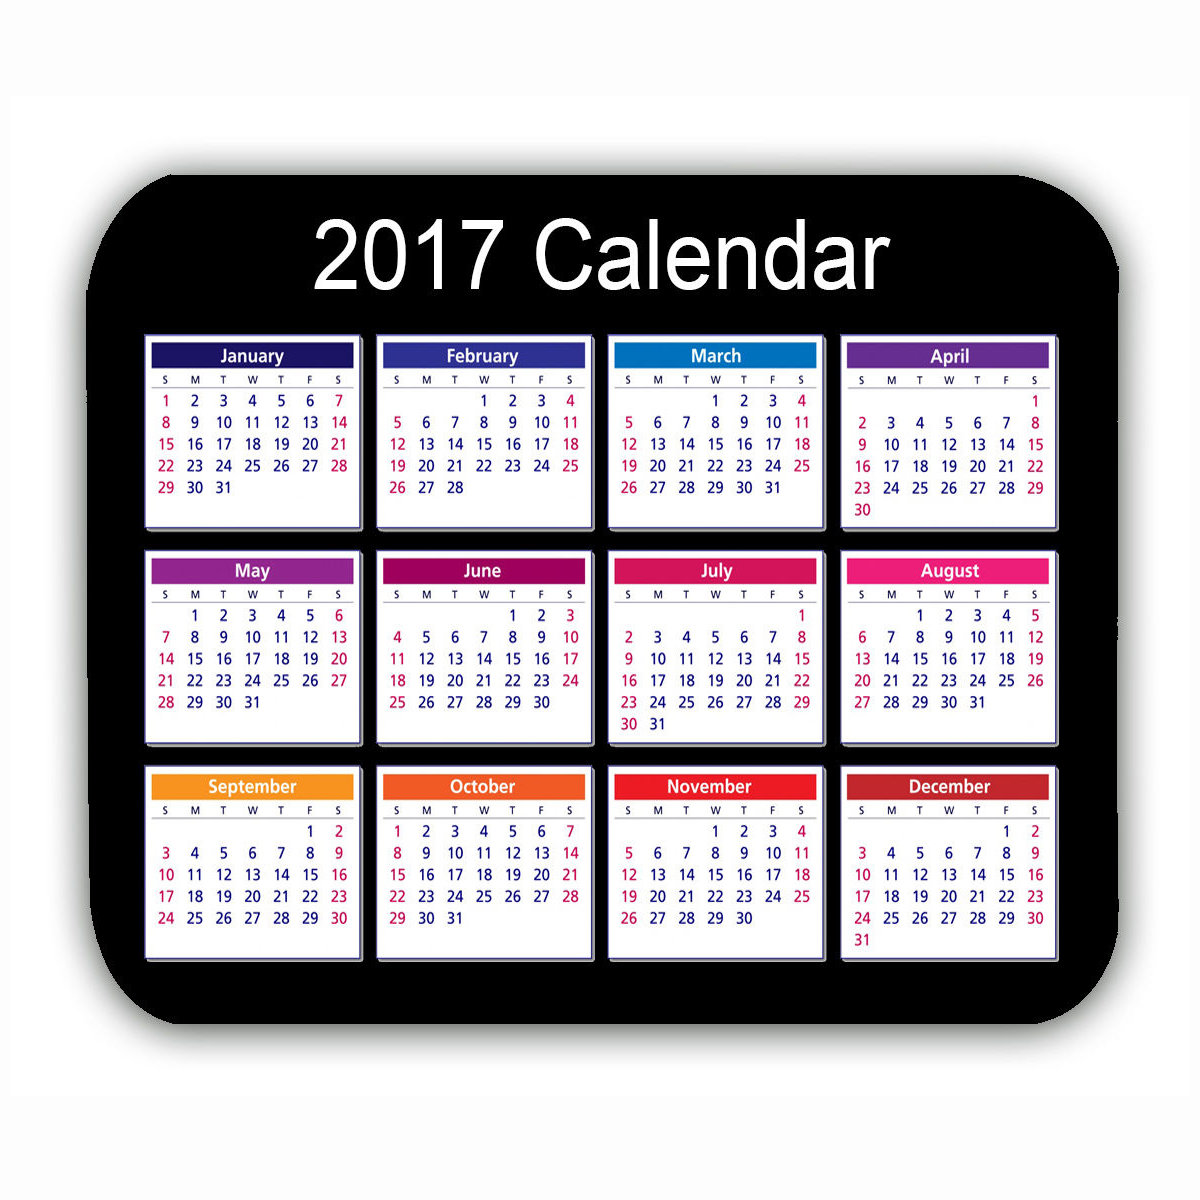 Calendario 2017 Tappetino mouse pad nero antiscivolo computer pc gaming mouse desktop